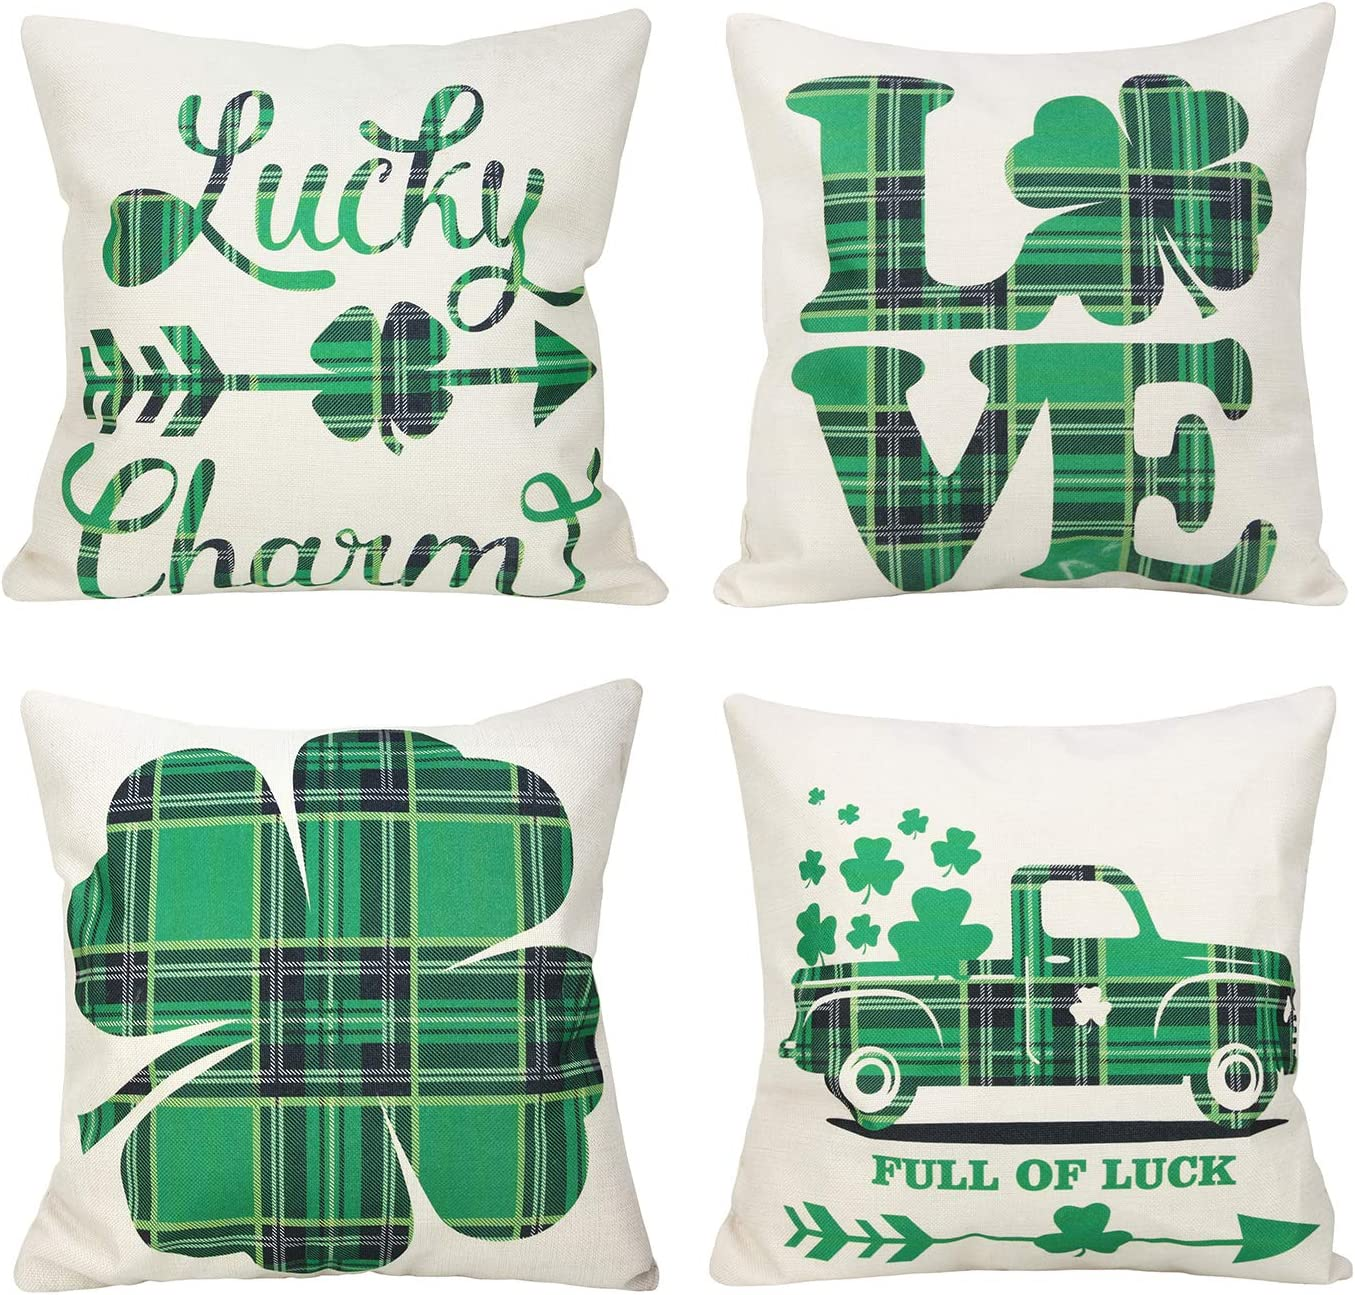 New arrival Merrycolor St. Patrick's Genuine Day Pillow Covers 4 Set of 18 X Inch